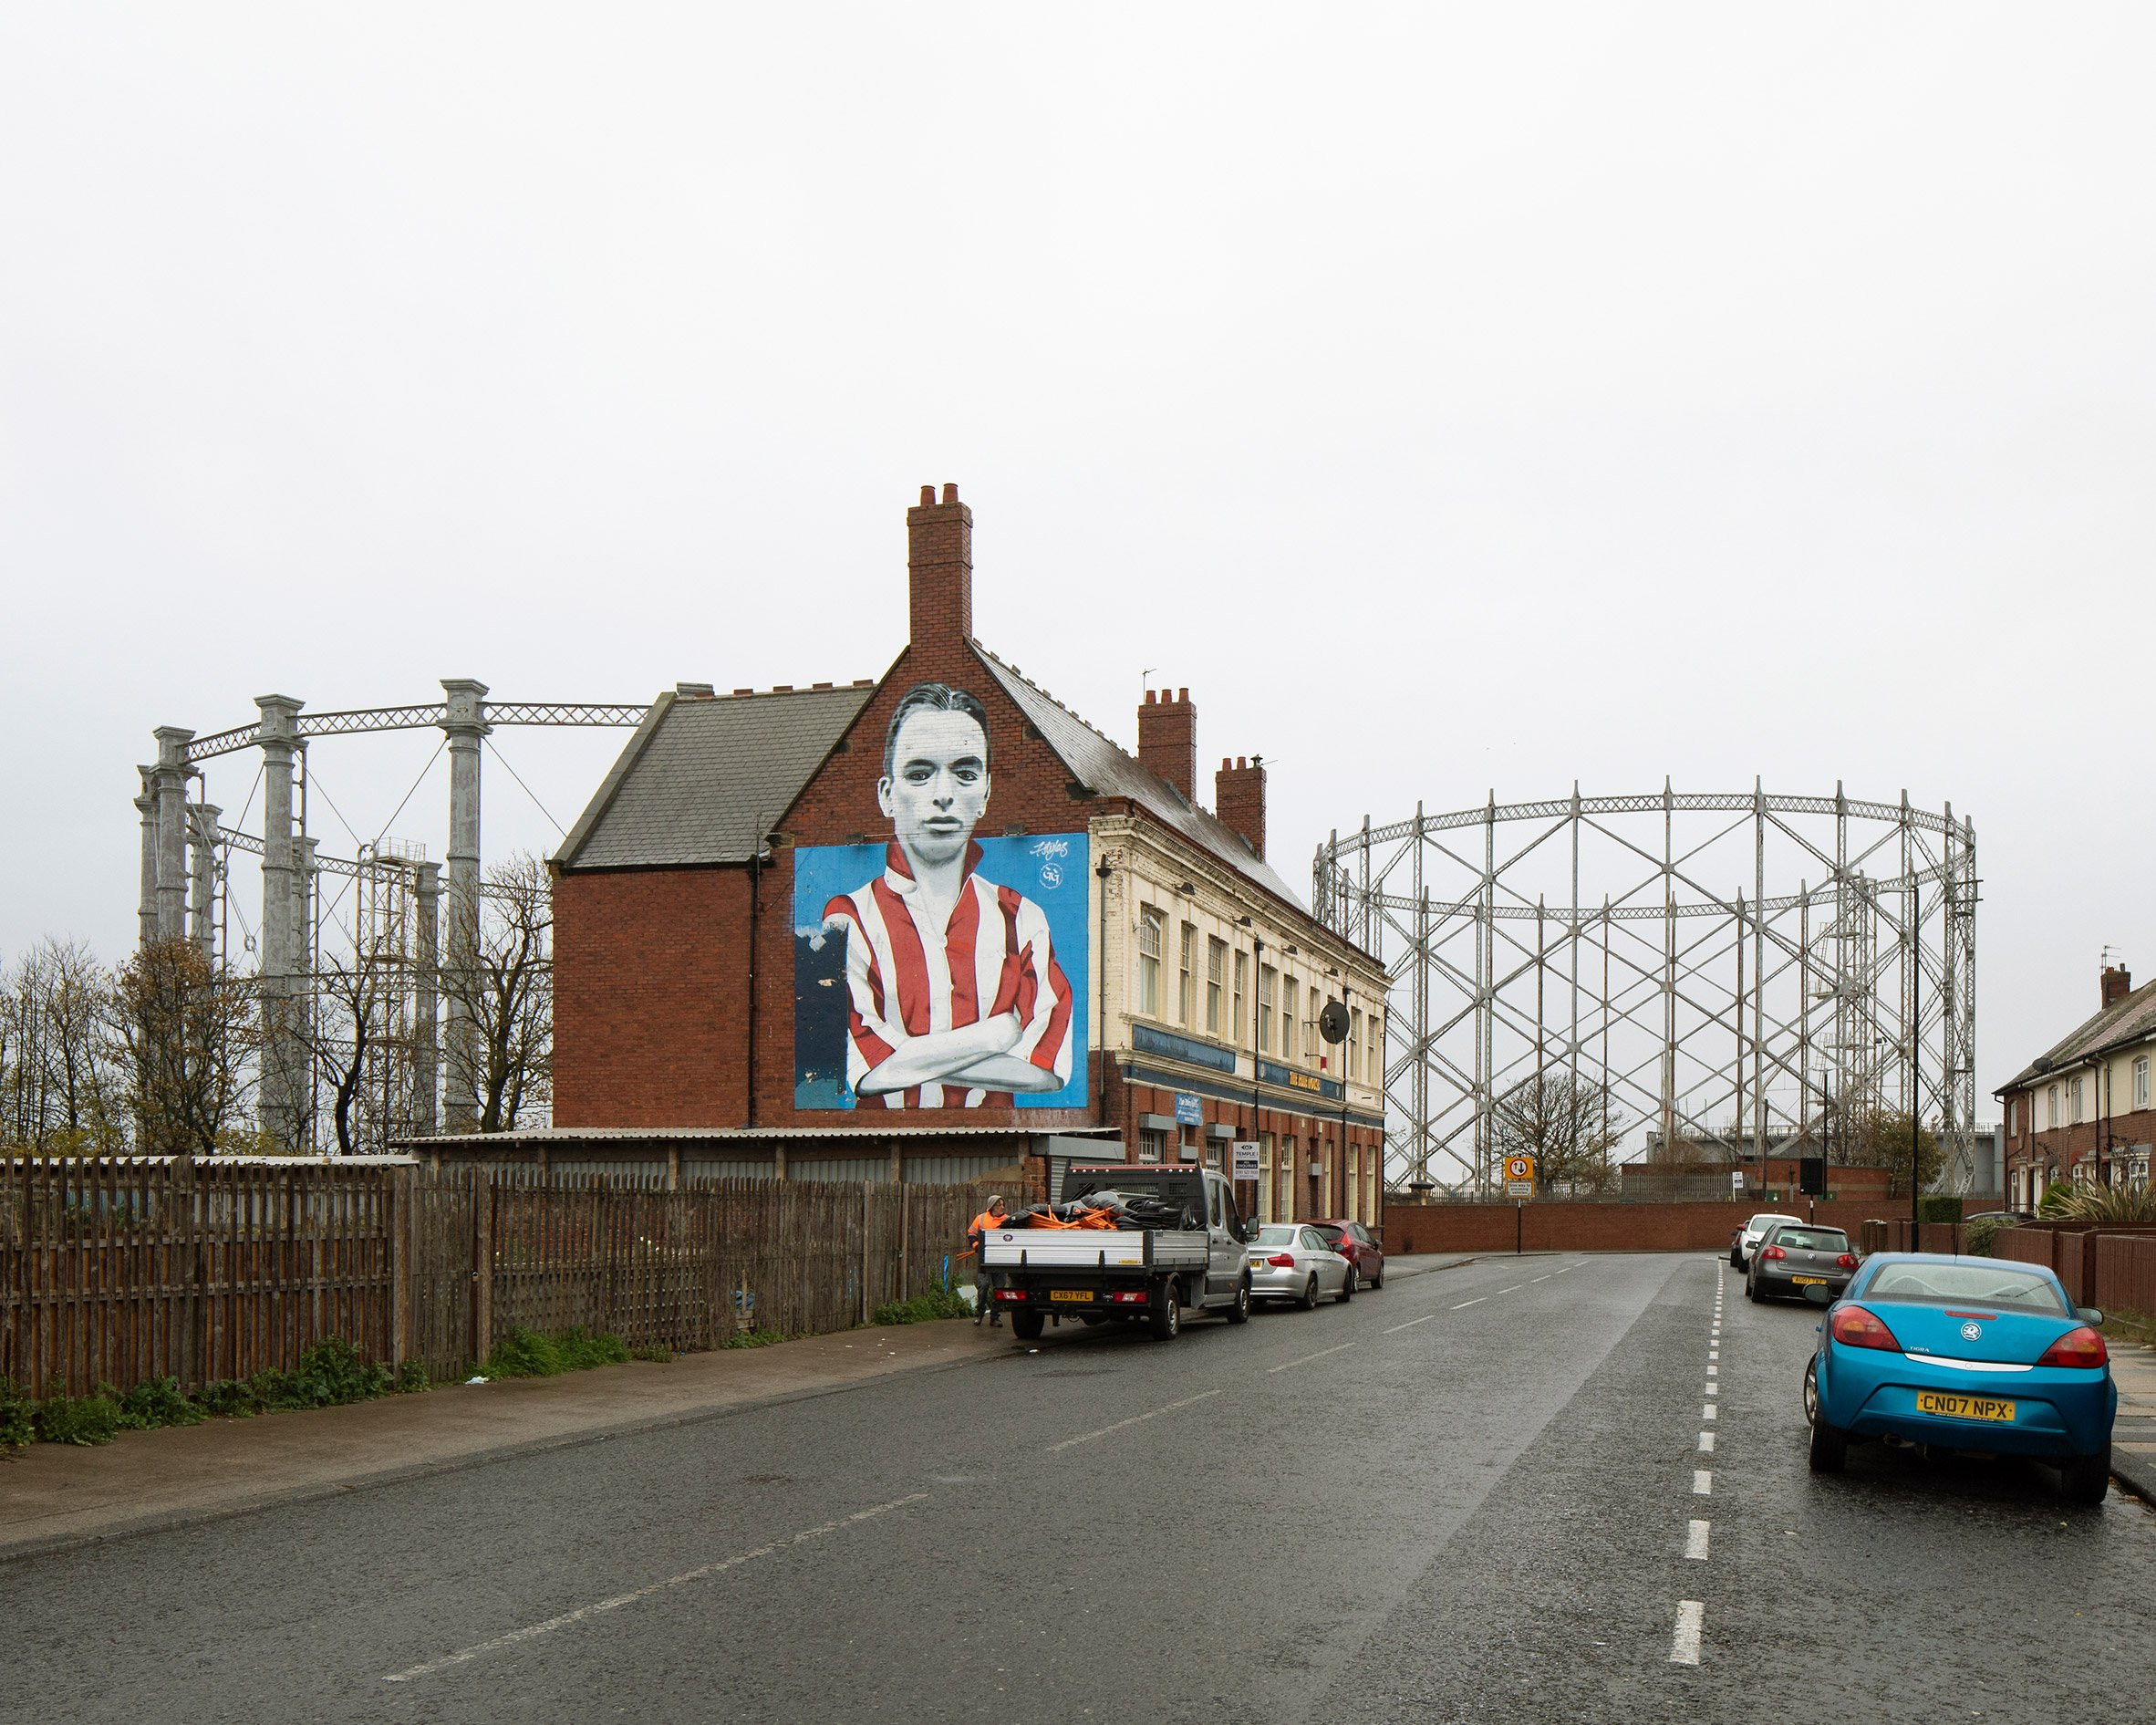 Offgrid: photographs of UKgas holders by Richard Chivers